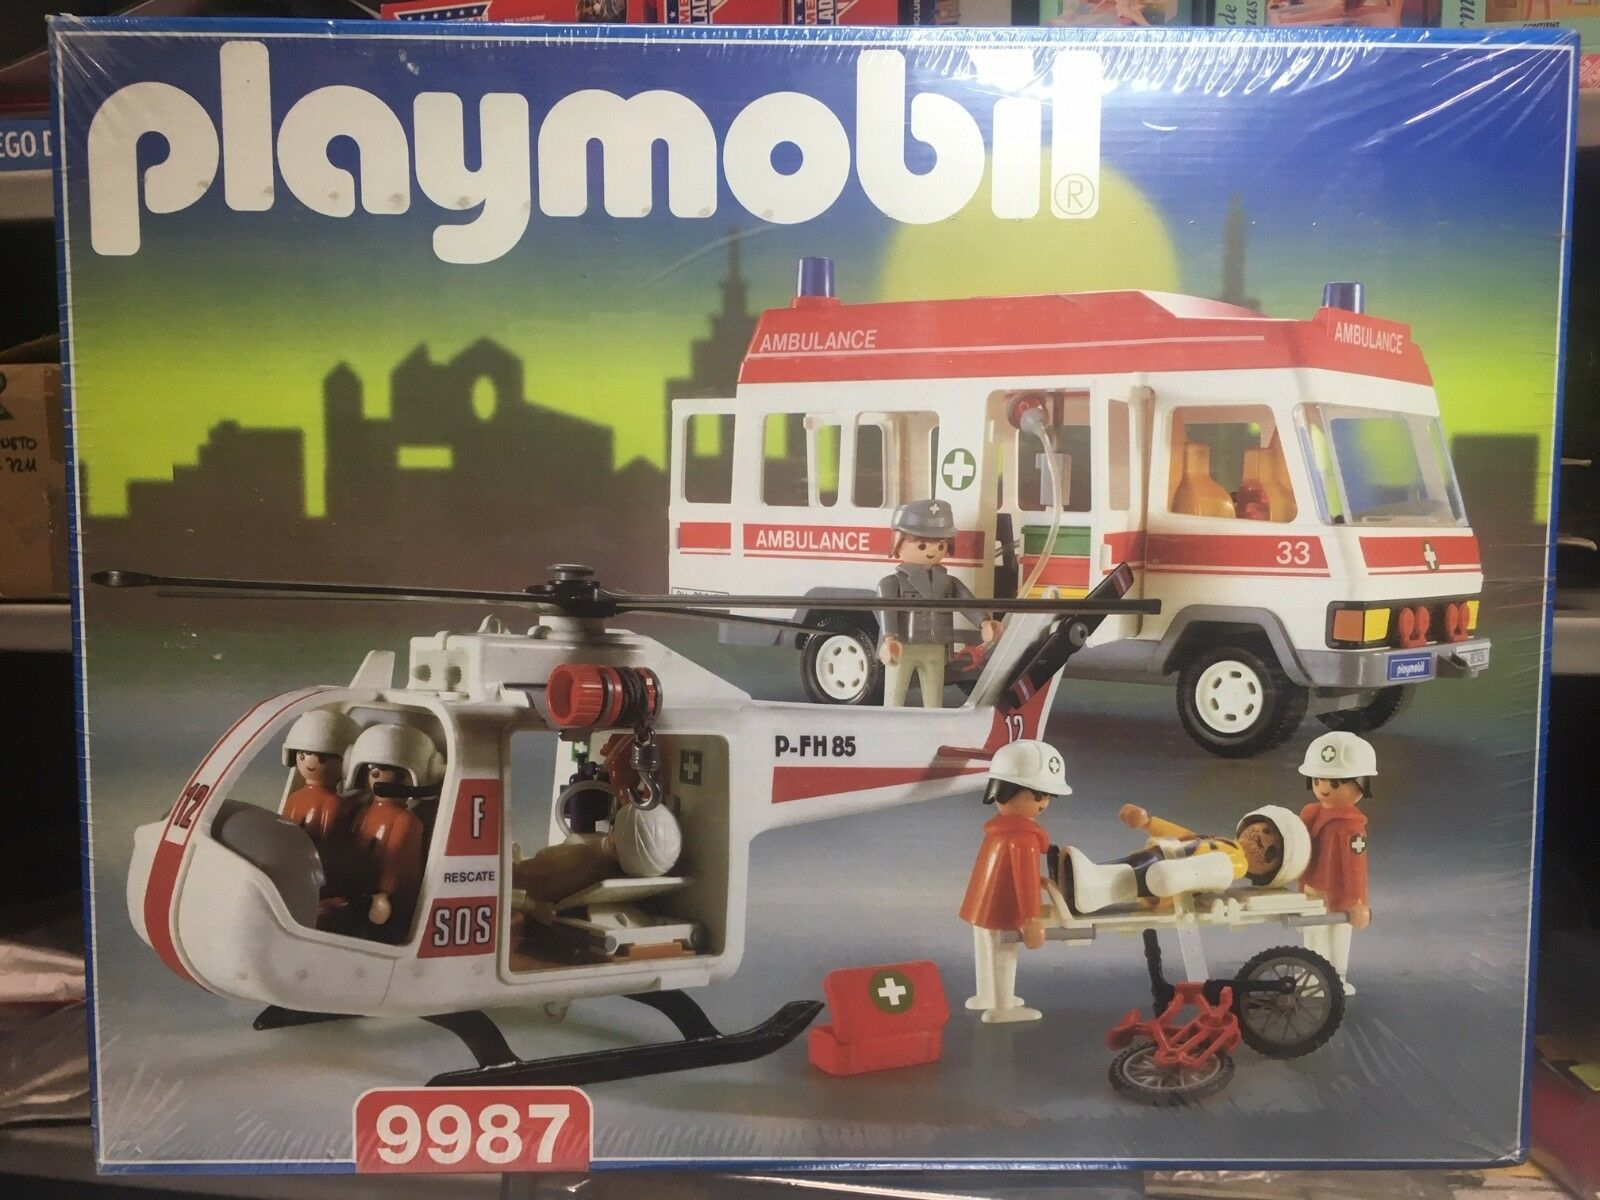 PLAYMOBIL 9987 AMBULANCIA - HELICÓPTERO  MADE IN  SPAIN  NUEVO SEALED  économiser jusqu'à 80%